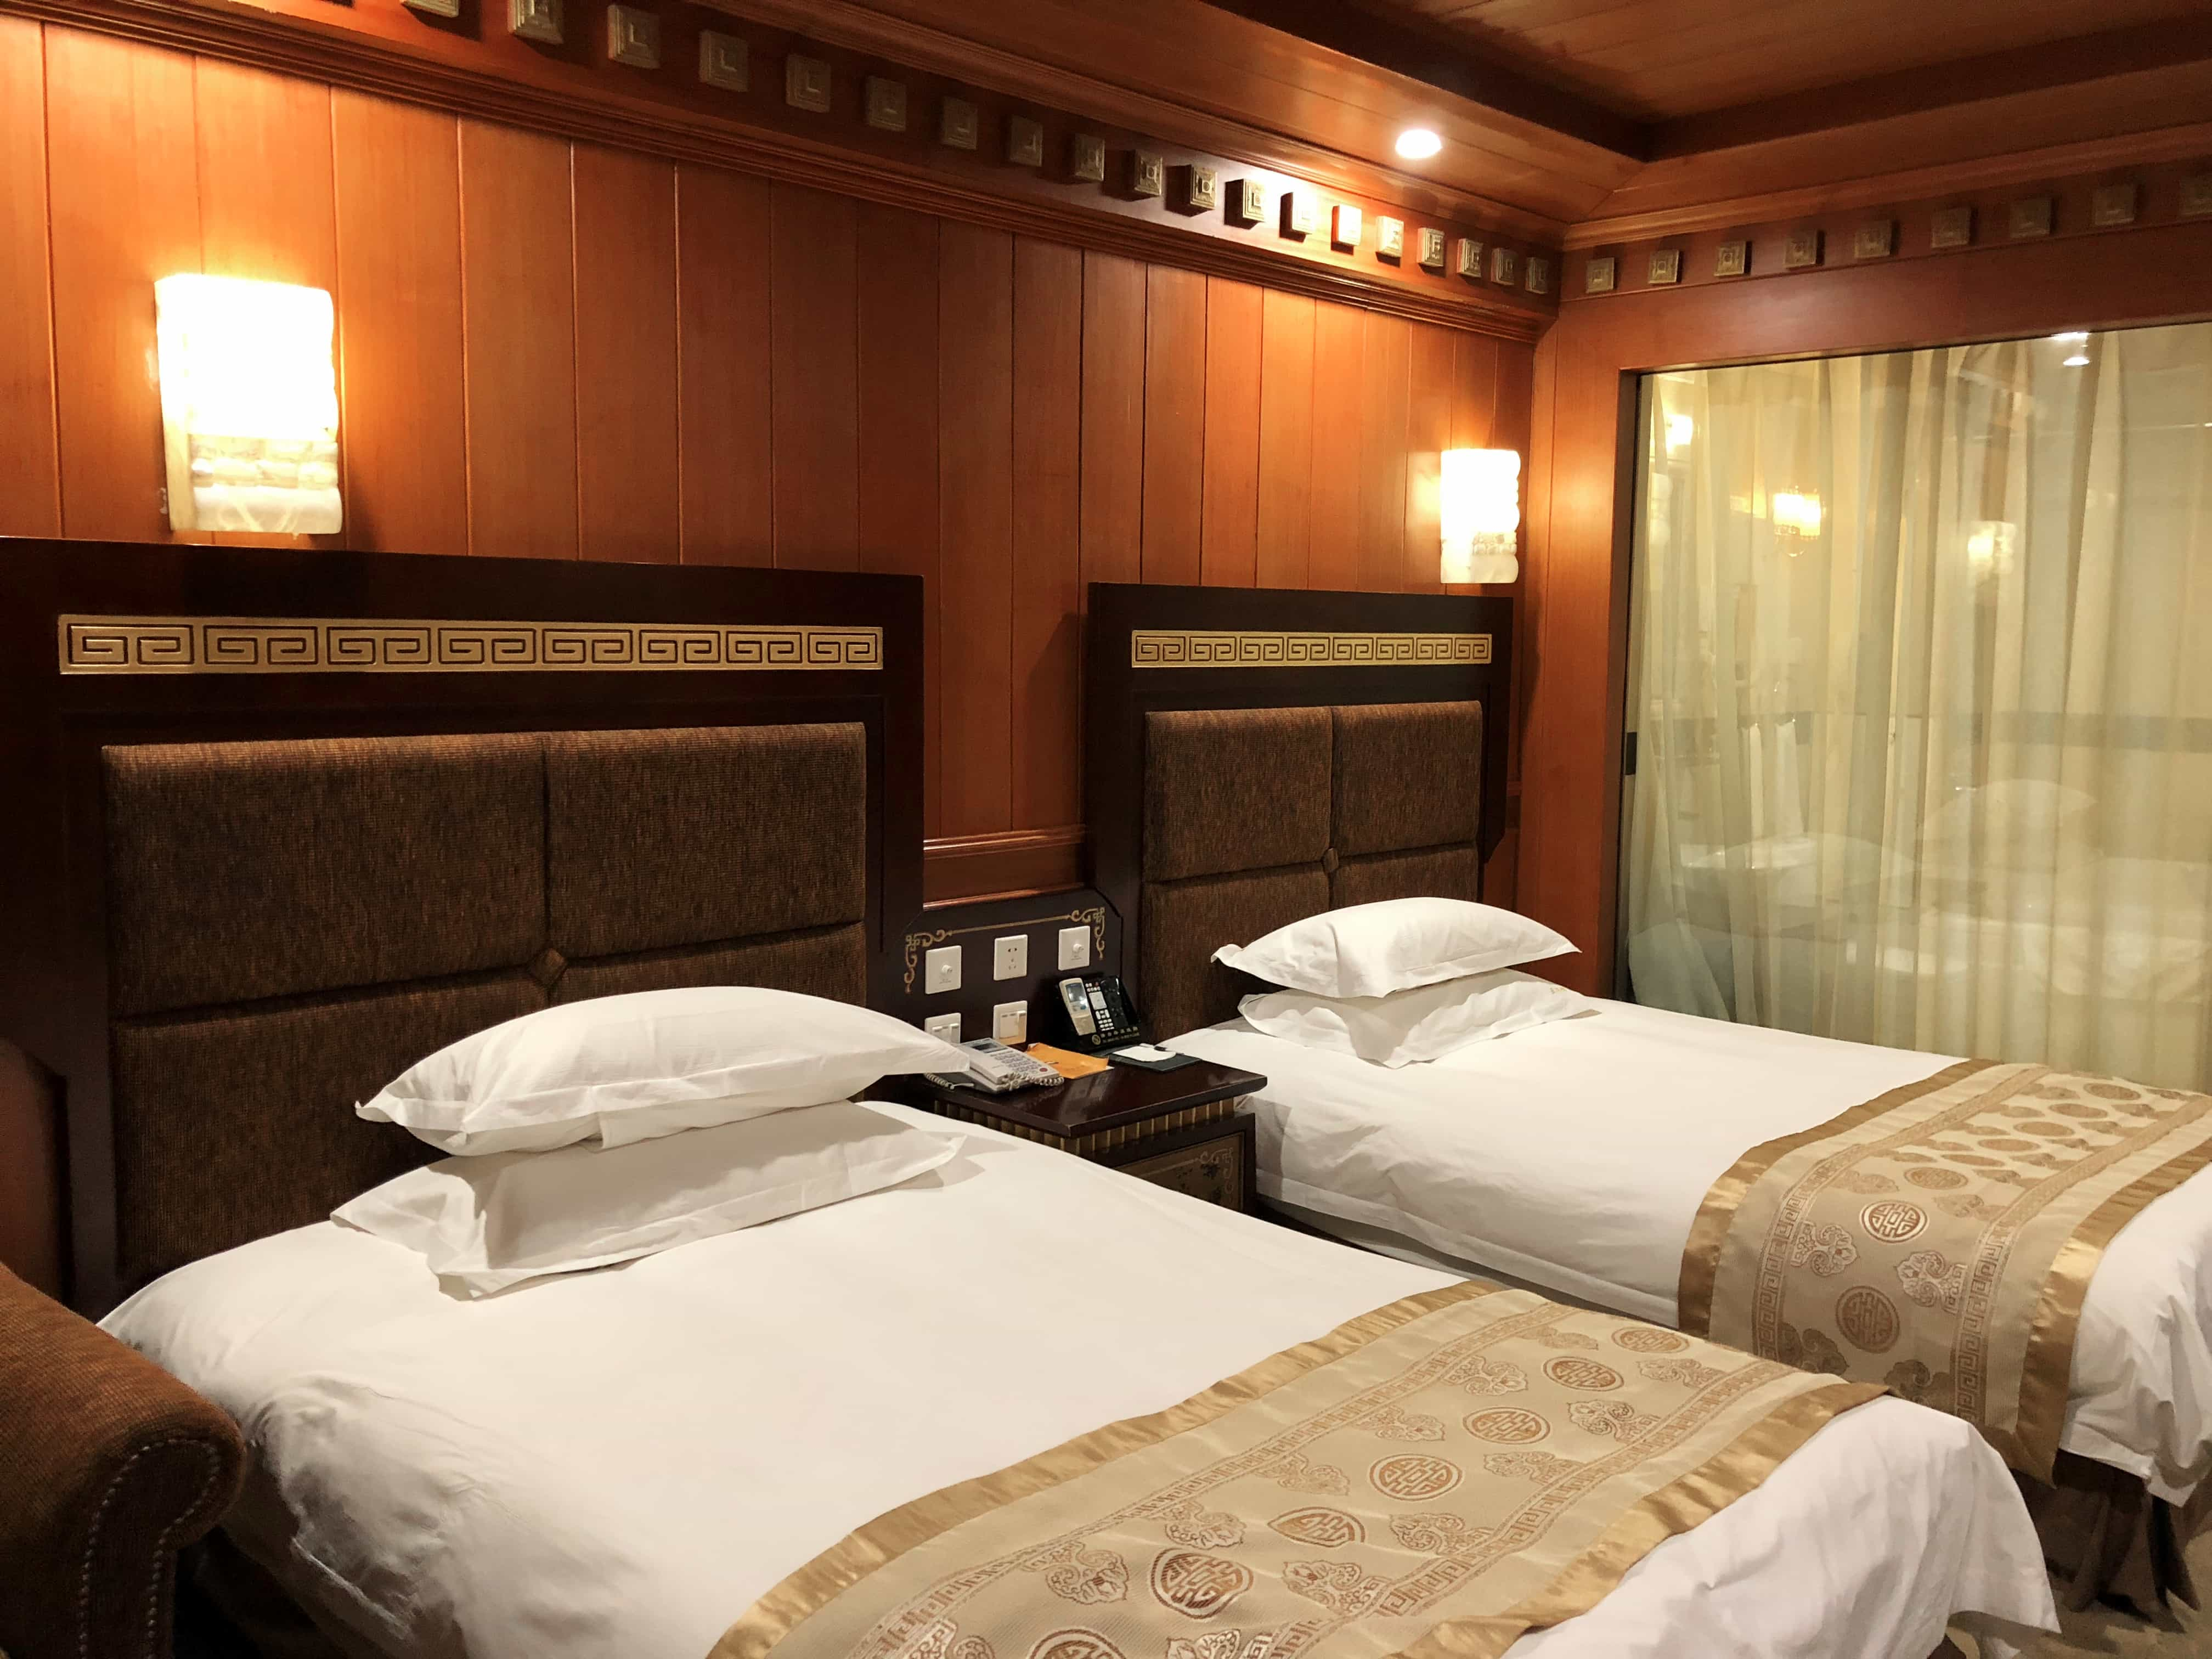 Twin room in Yak hotel, Lhasa